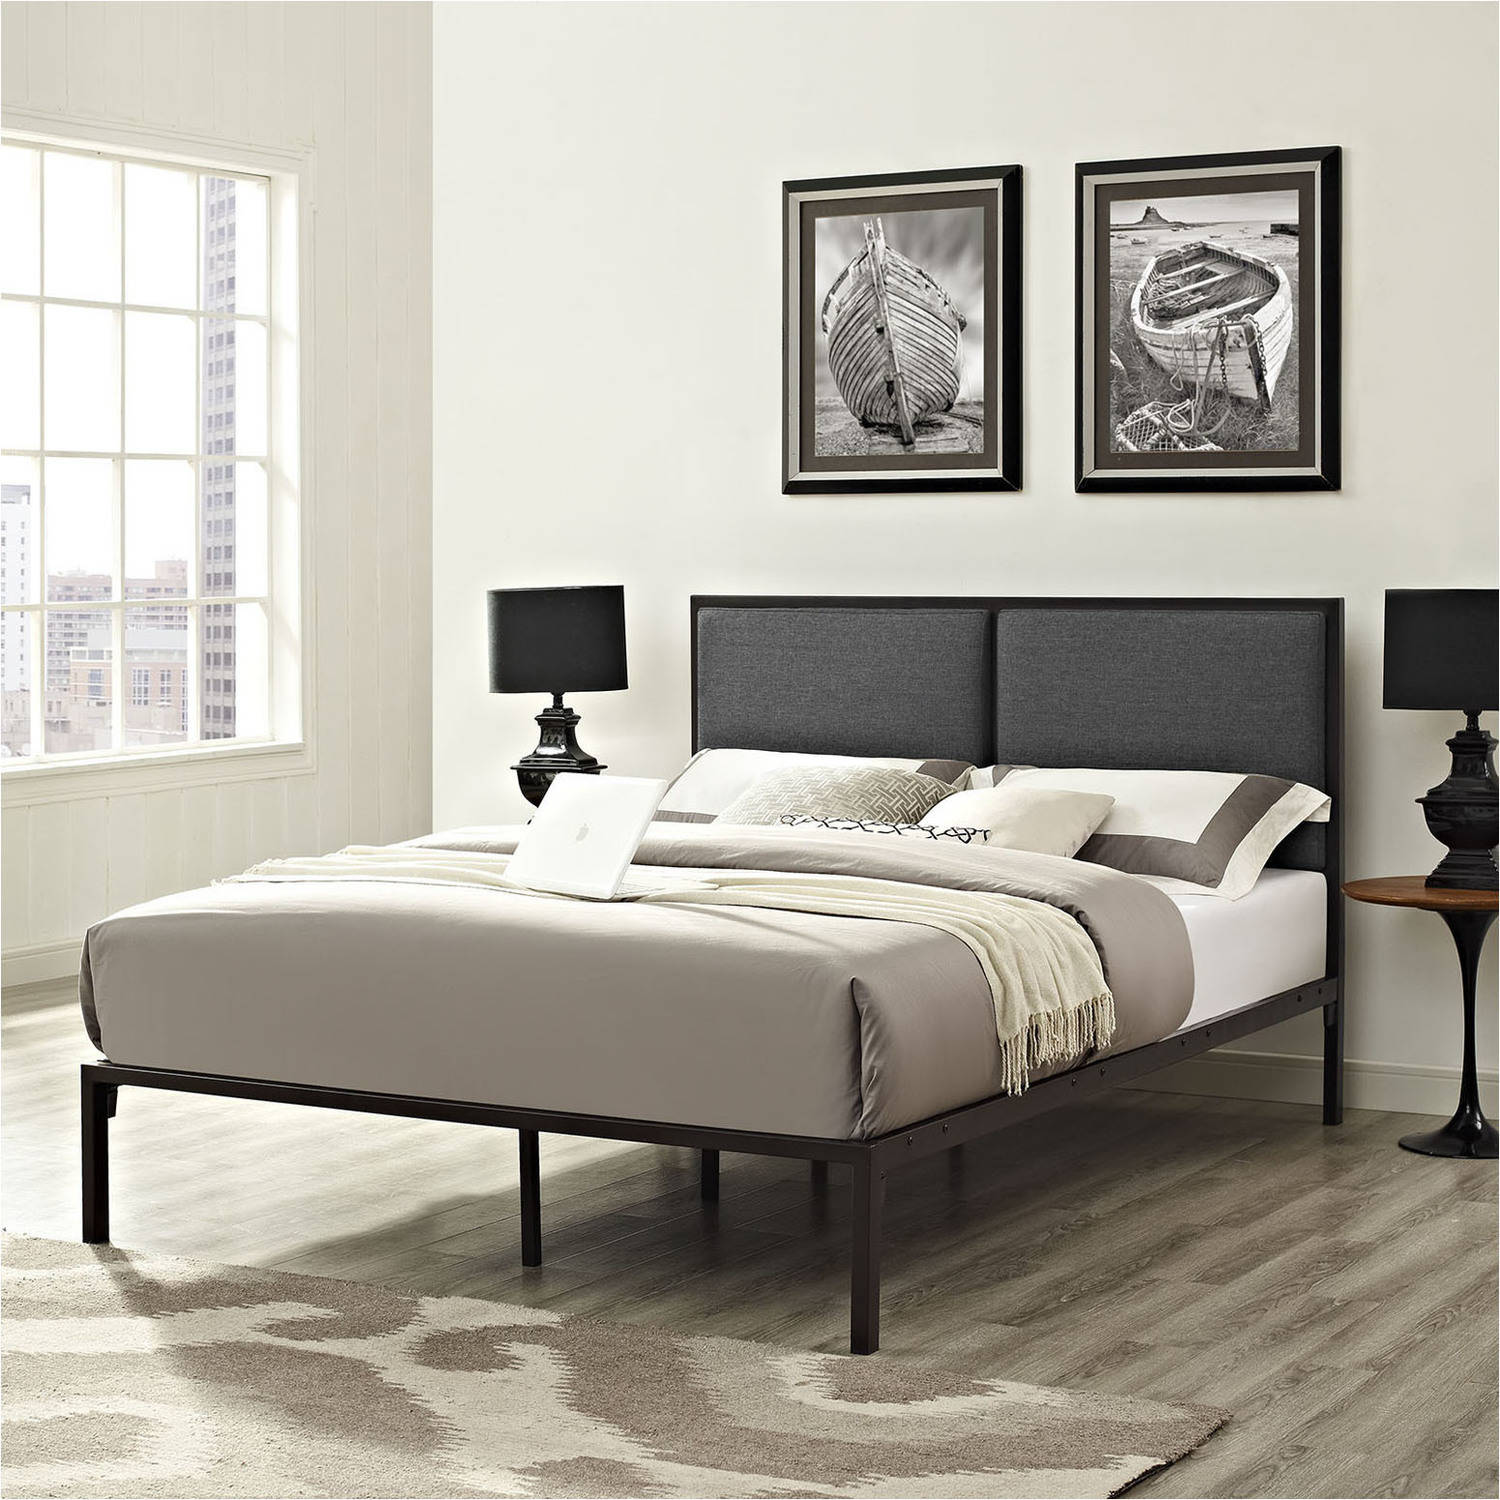 Modway Della Queen Upholstered Platform Bed, Multiple Colors